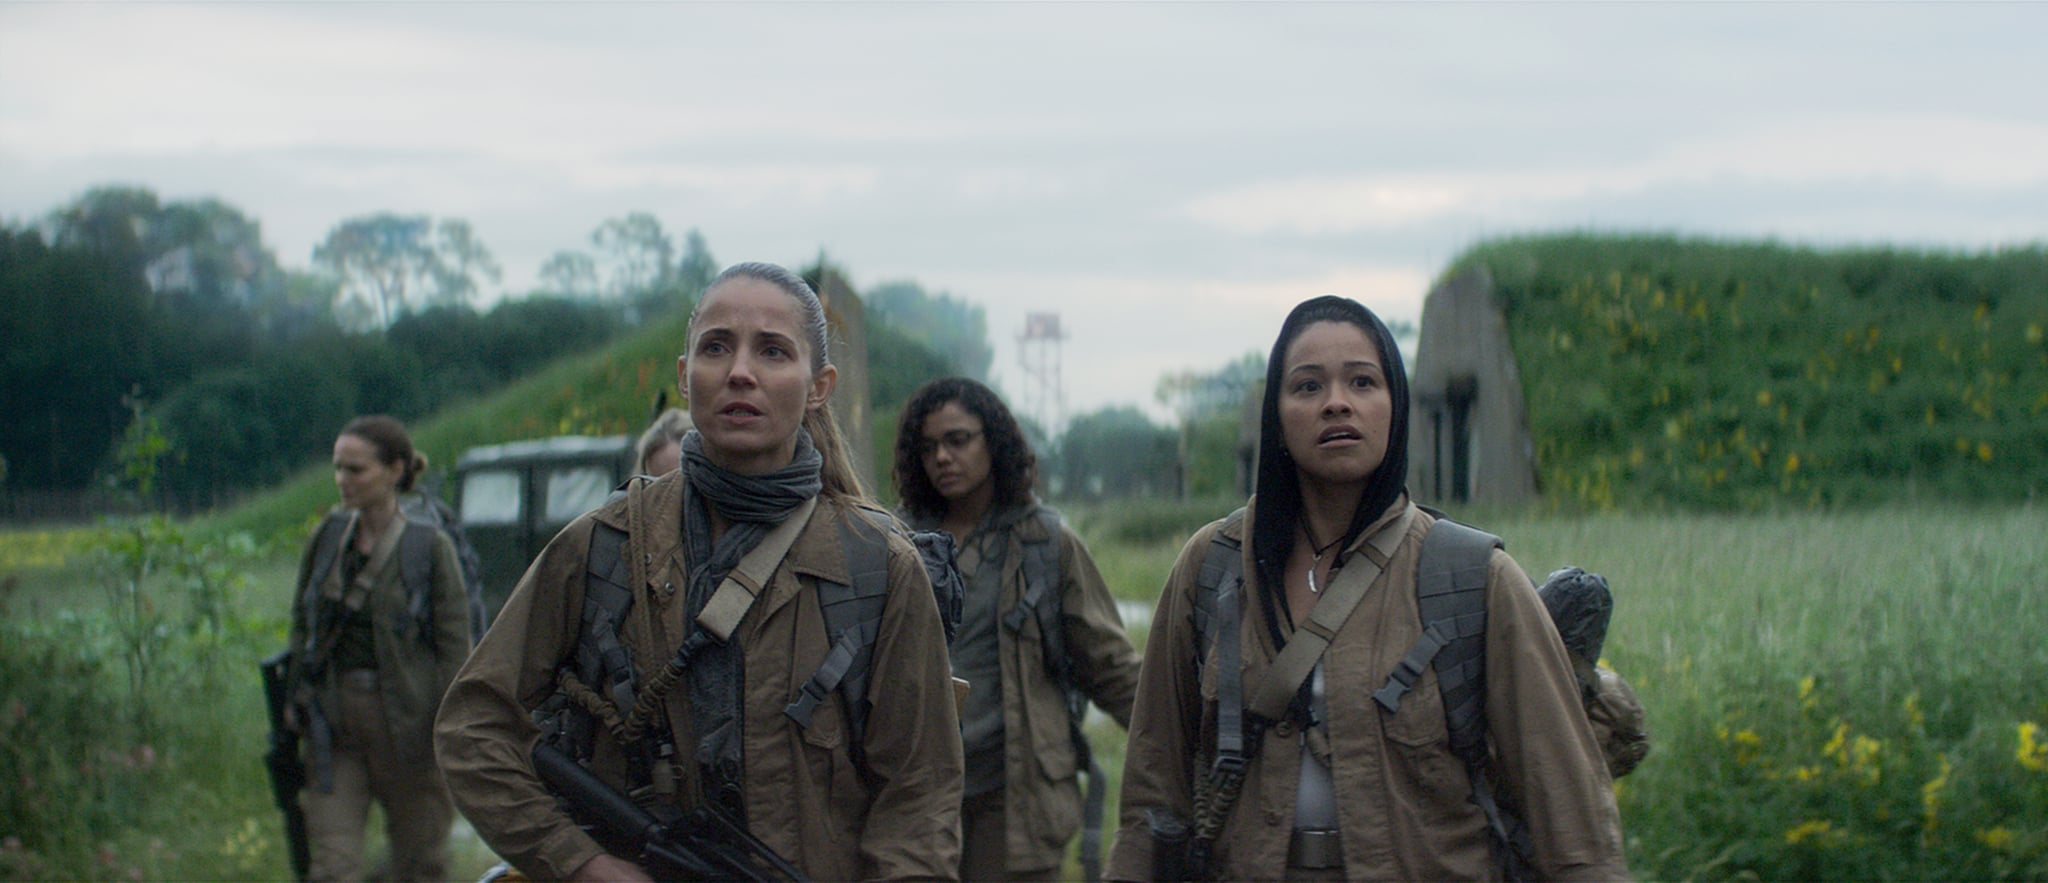 ANNIHILATION, from left: Natalie Portman, Tuva Novotny, Tessa Thompson, Gina Rodriguez,  2018.  Paramount Pictures /courtesy Everett Collection